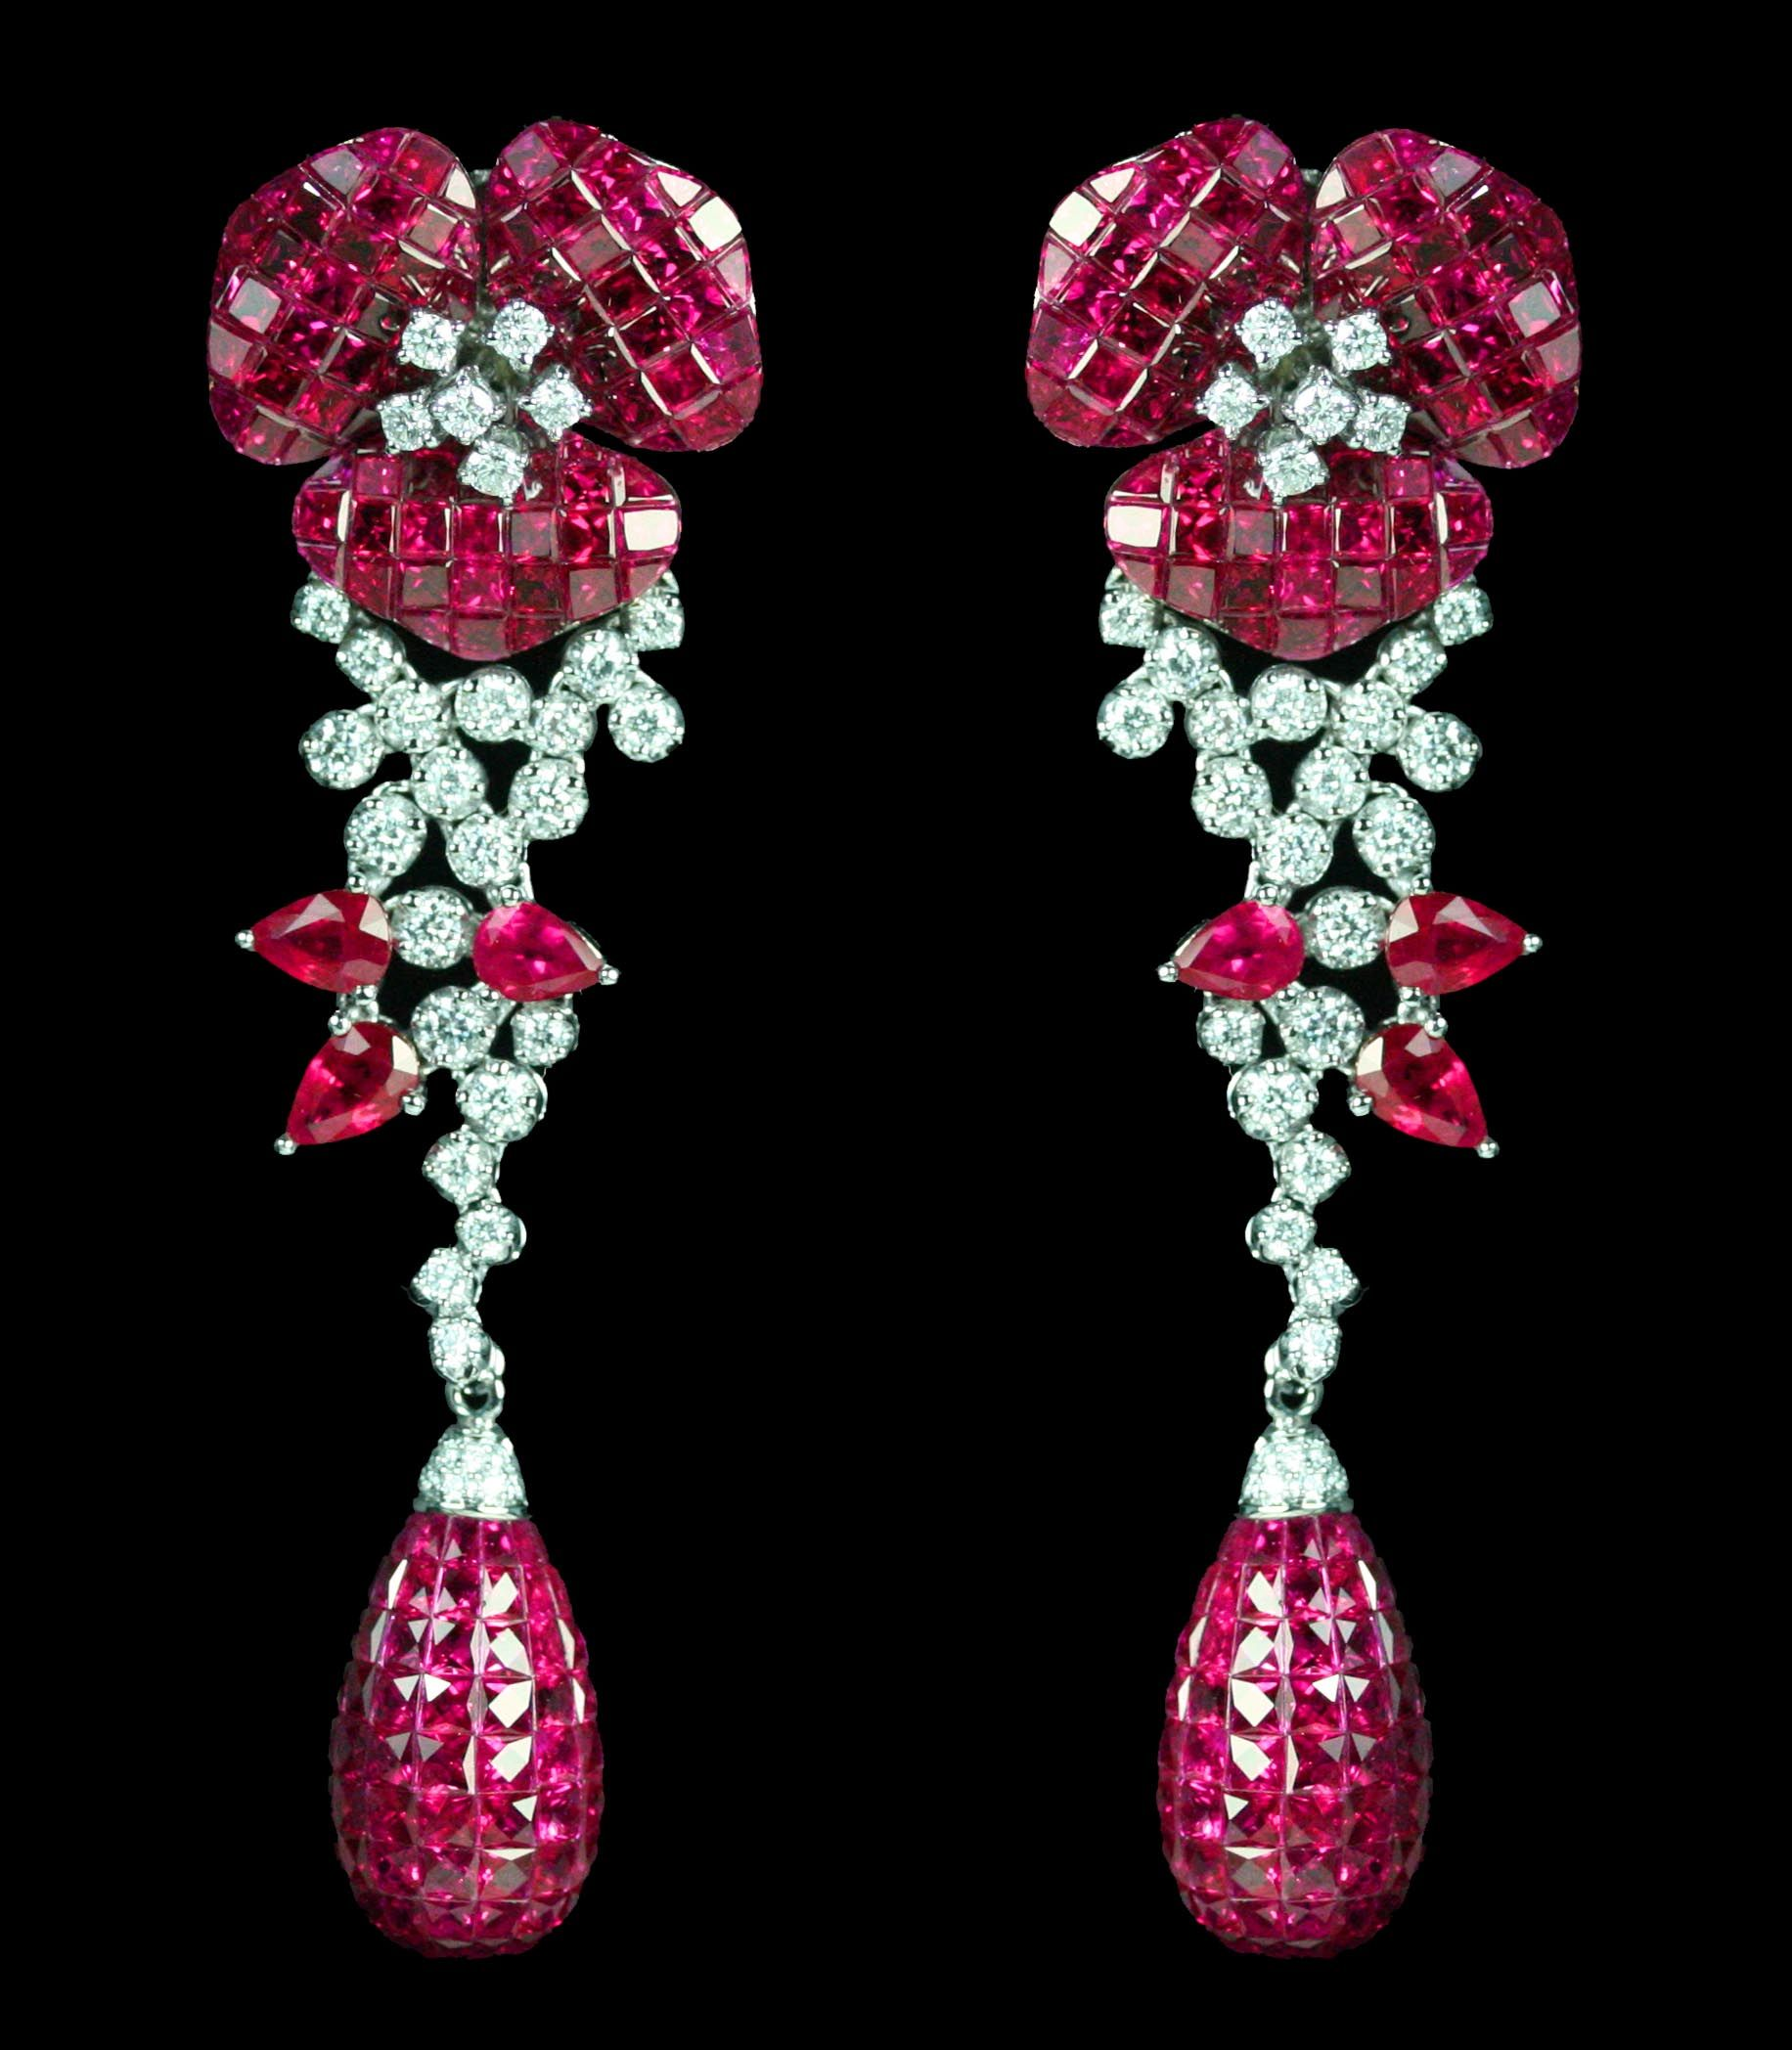 Van Cleef & Arpels Invisiblyset Ruby And Diamond Floral Earrings